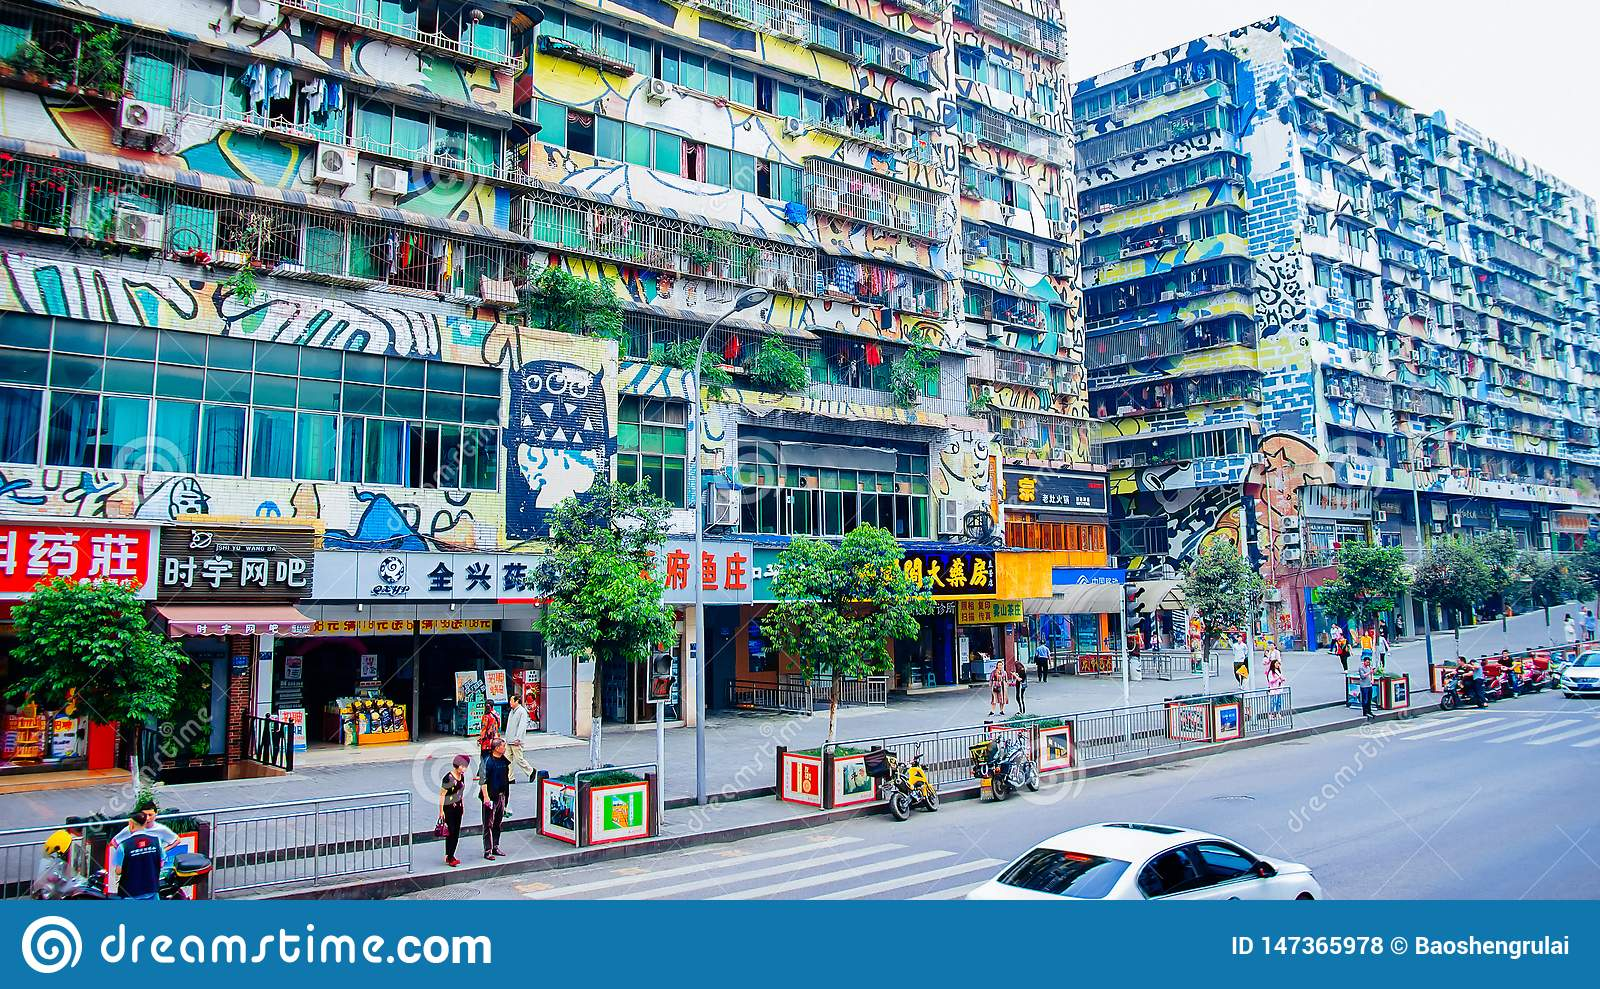 Colored streets - buildings with colorful graffiti